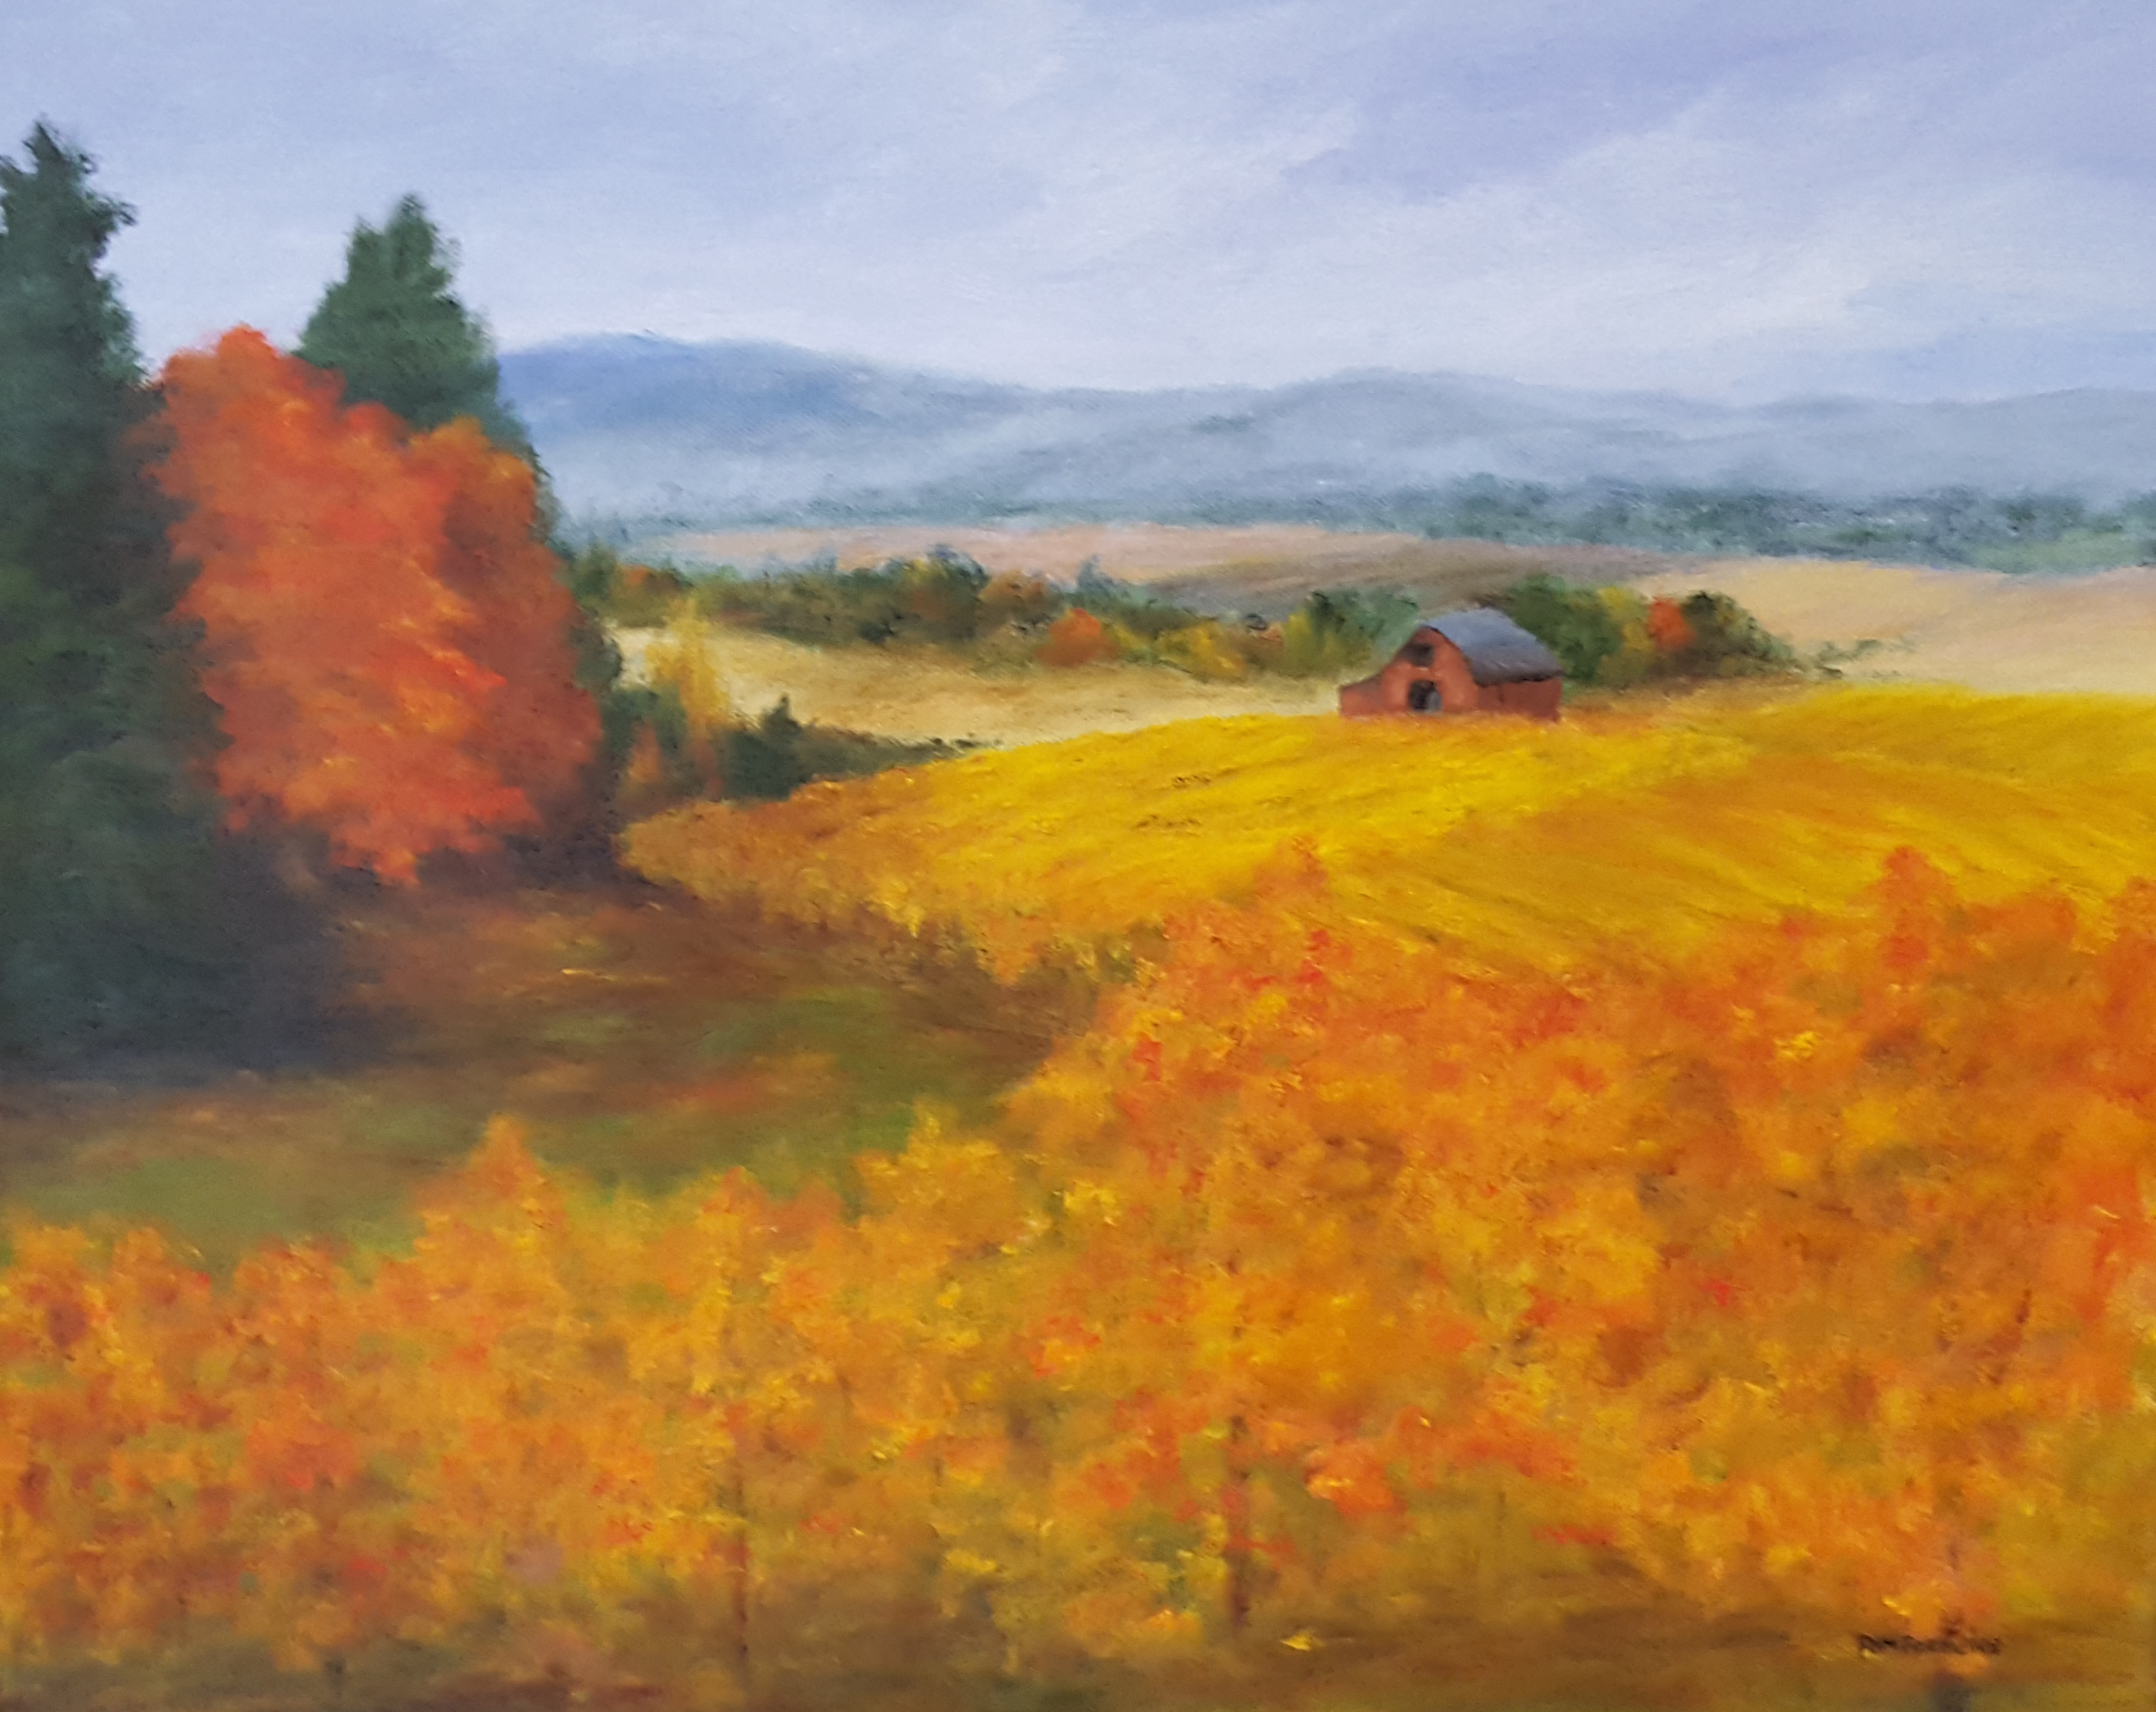 Shades of Autumn - Pam Parmelee